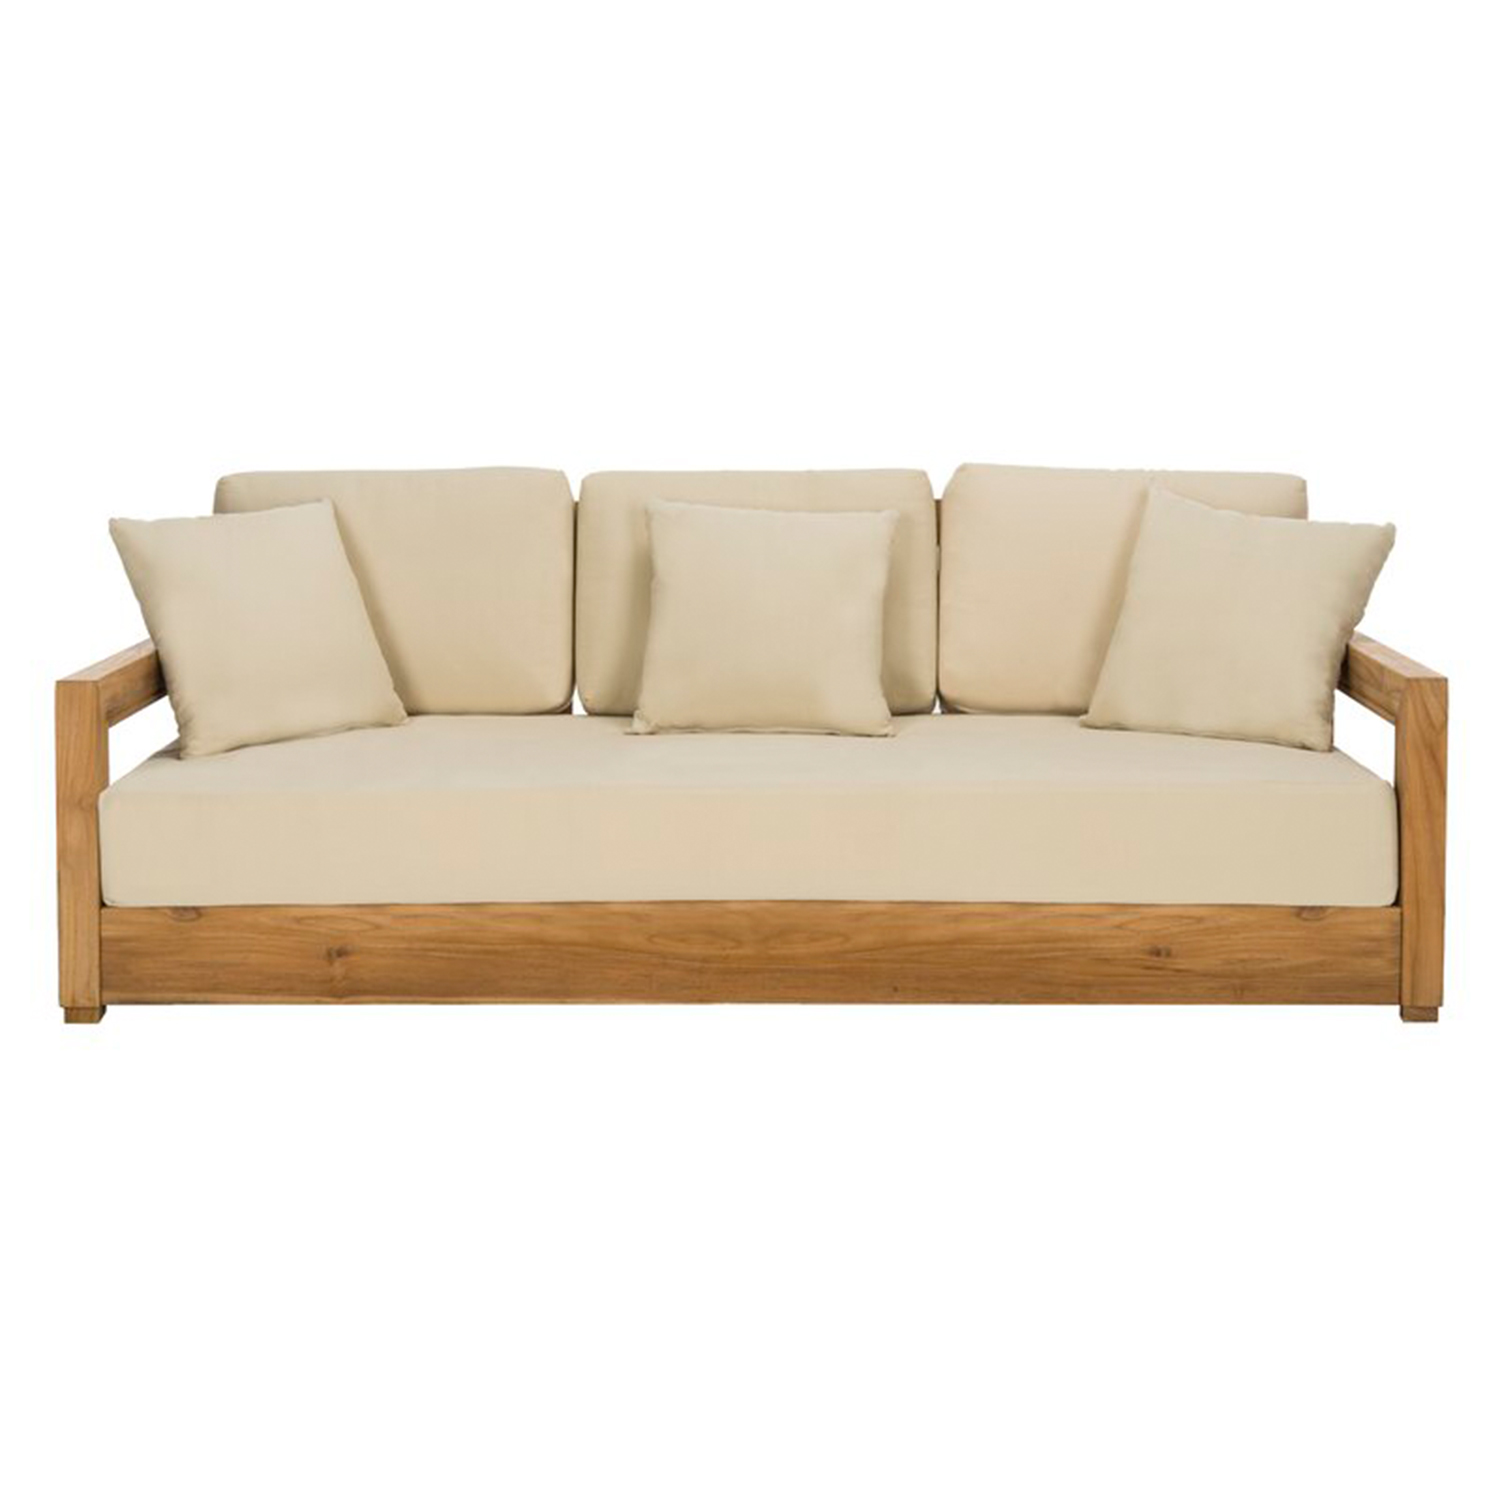 O'Kean Teak Patio Sofa with Cushions